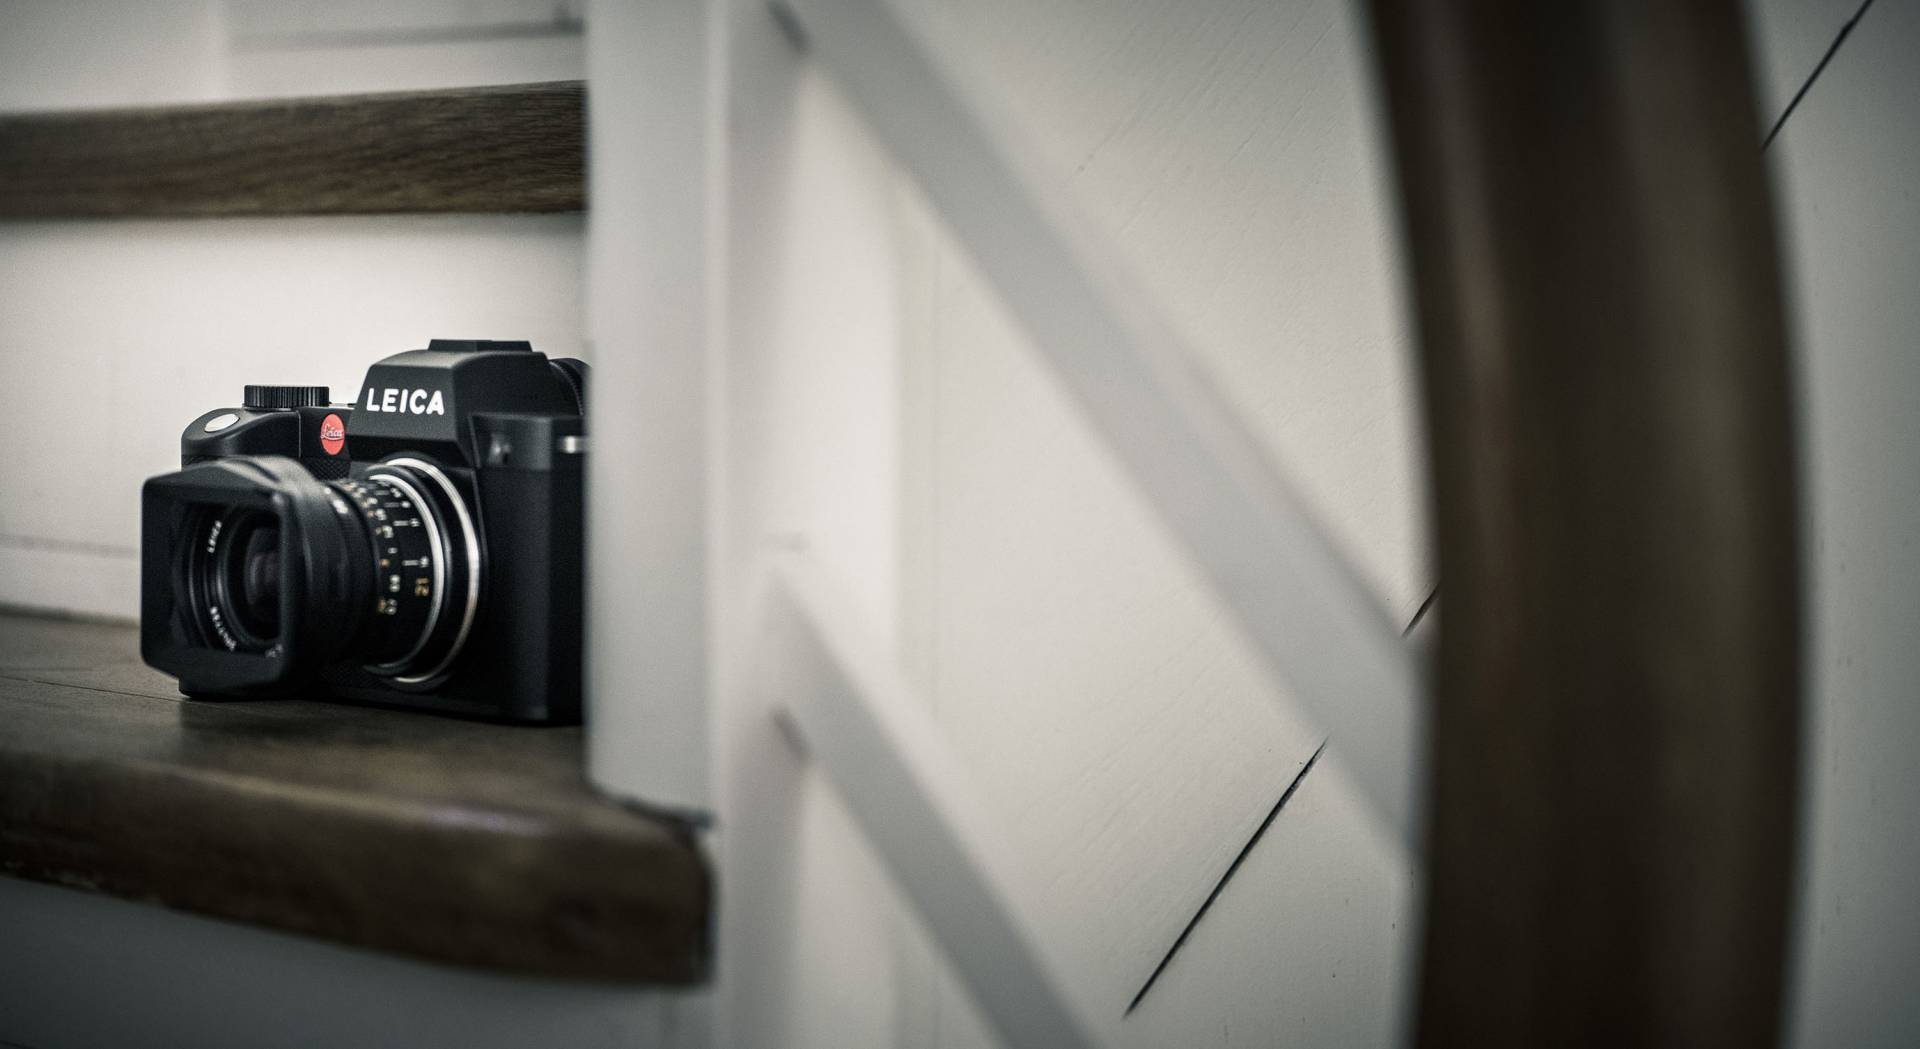 Leica's New Milestone: My first experiences with the SL2